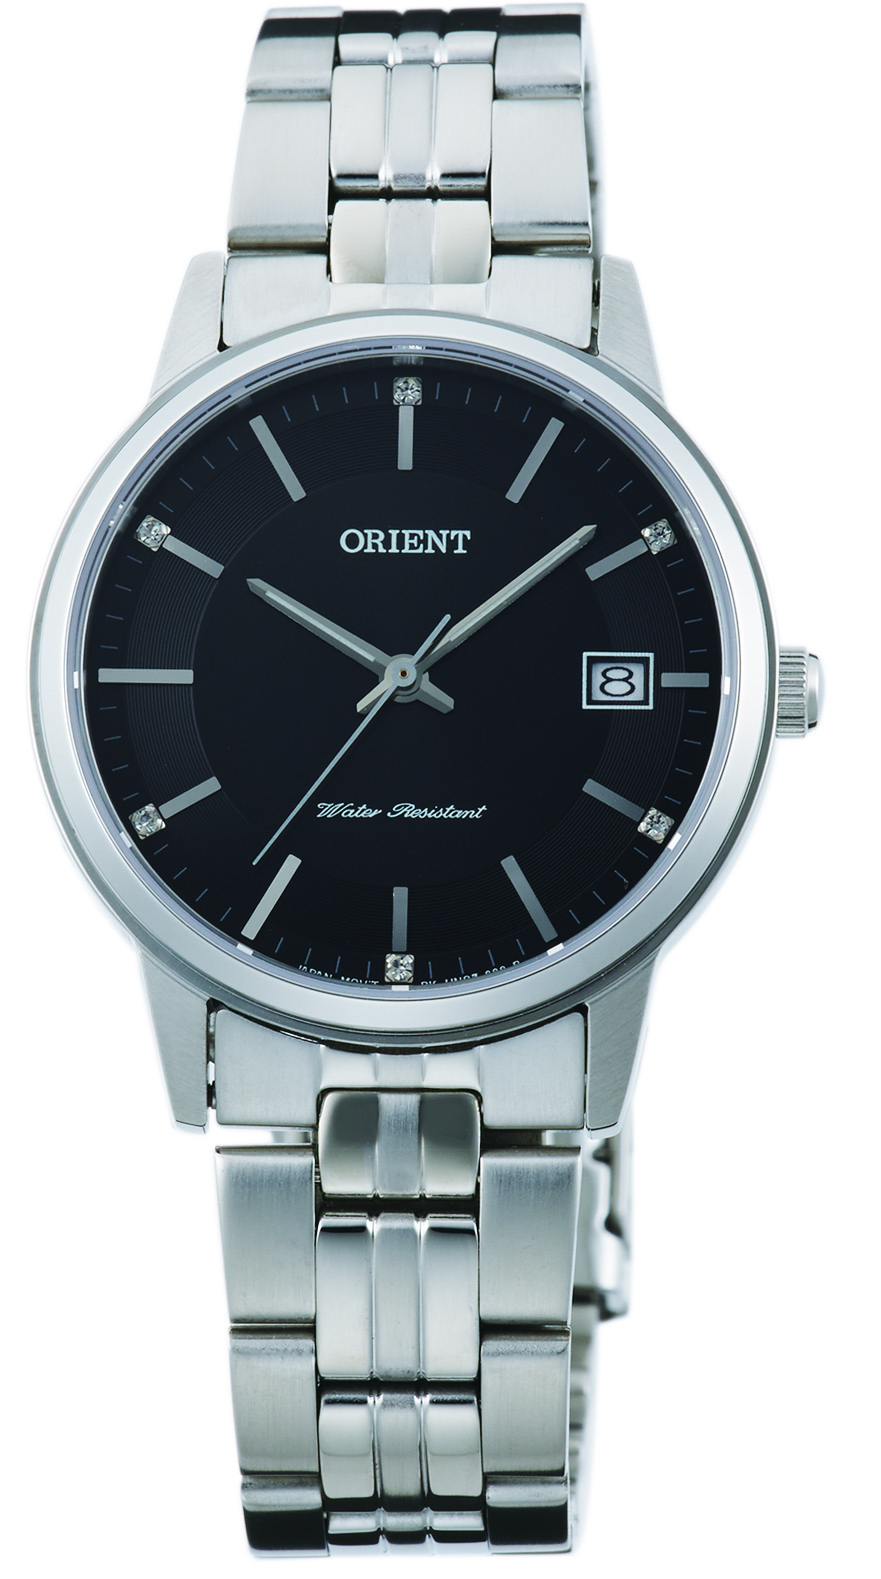 Orient Contemporary Dameklokke FUNG7003B0 Sort/Stål Ø32 mm - Orient